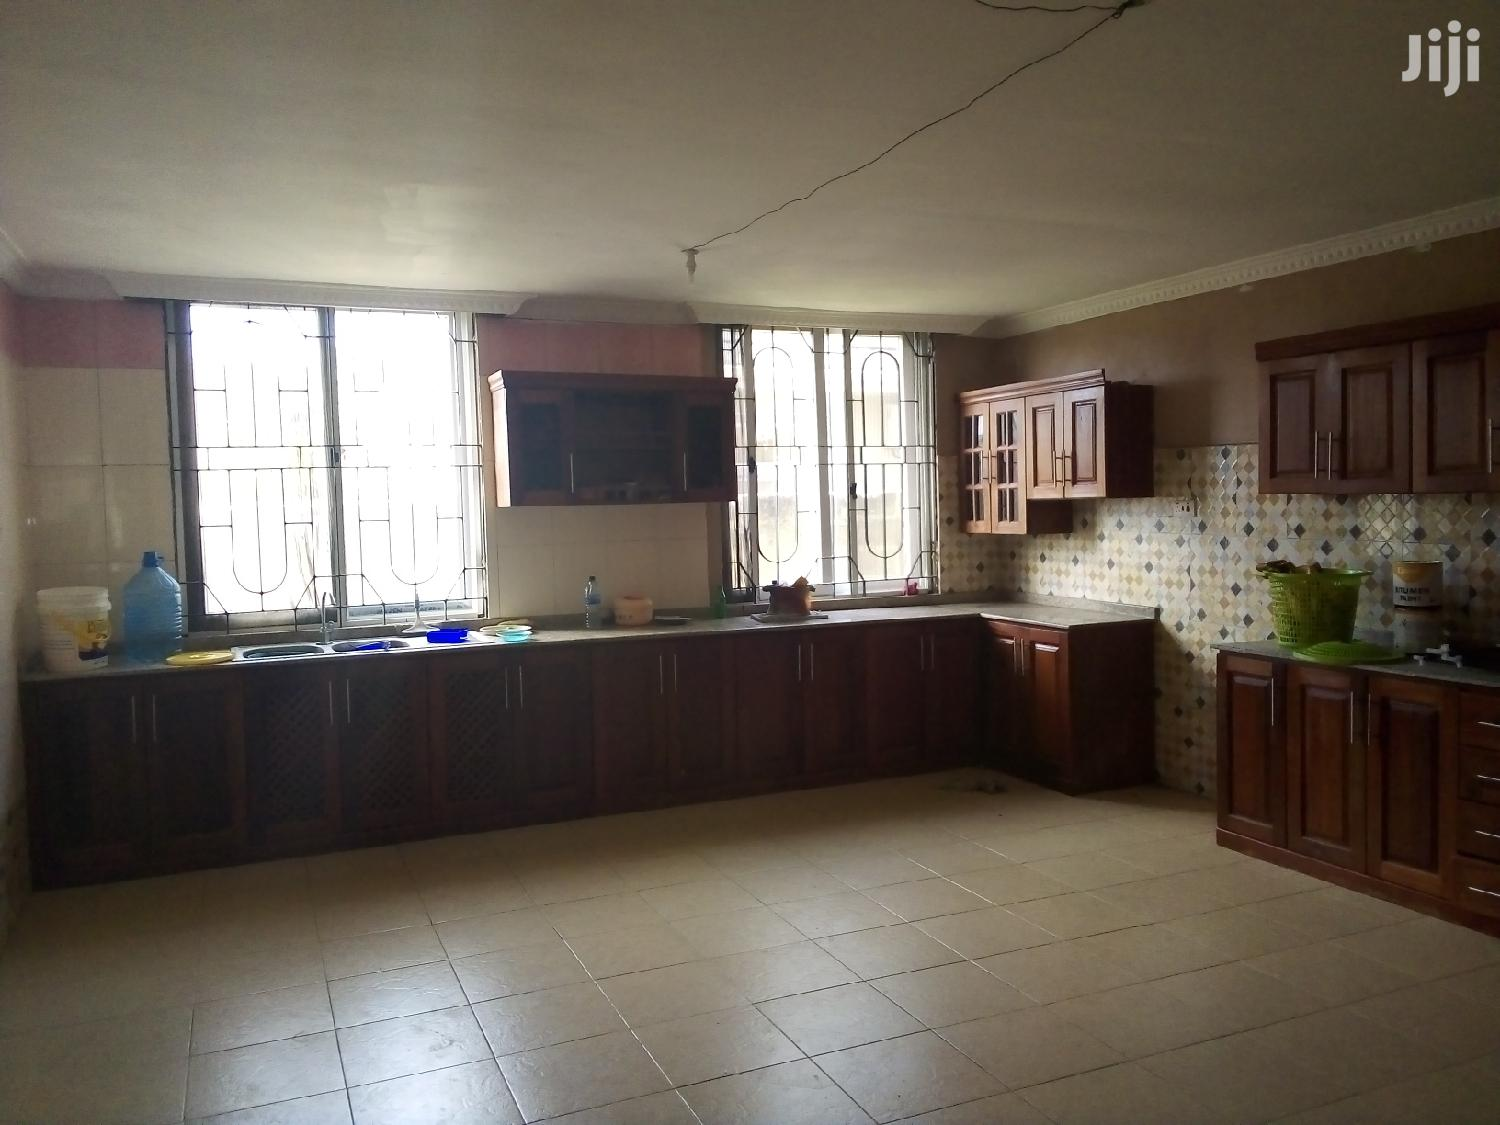 3 Bedroom House In Mbweni For Rent | Houses & Apartments For Rent for sale in Kinondoni, Dar es Salaam, Tanzania